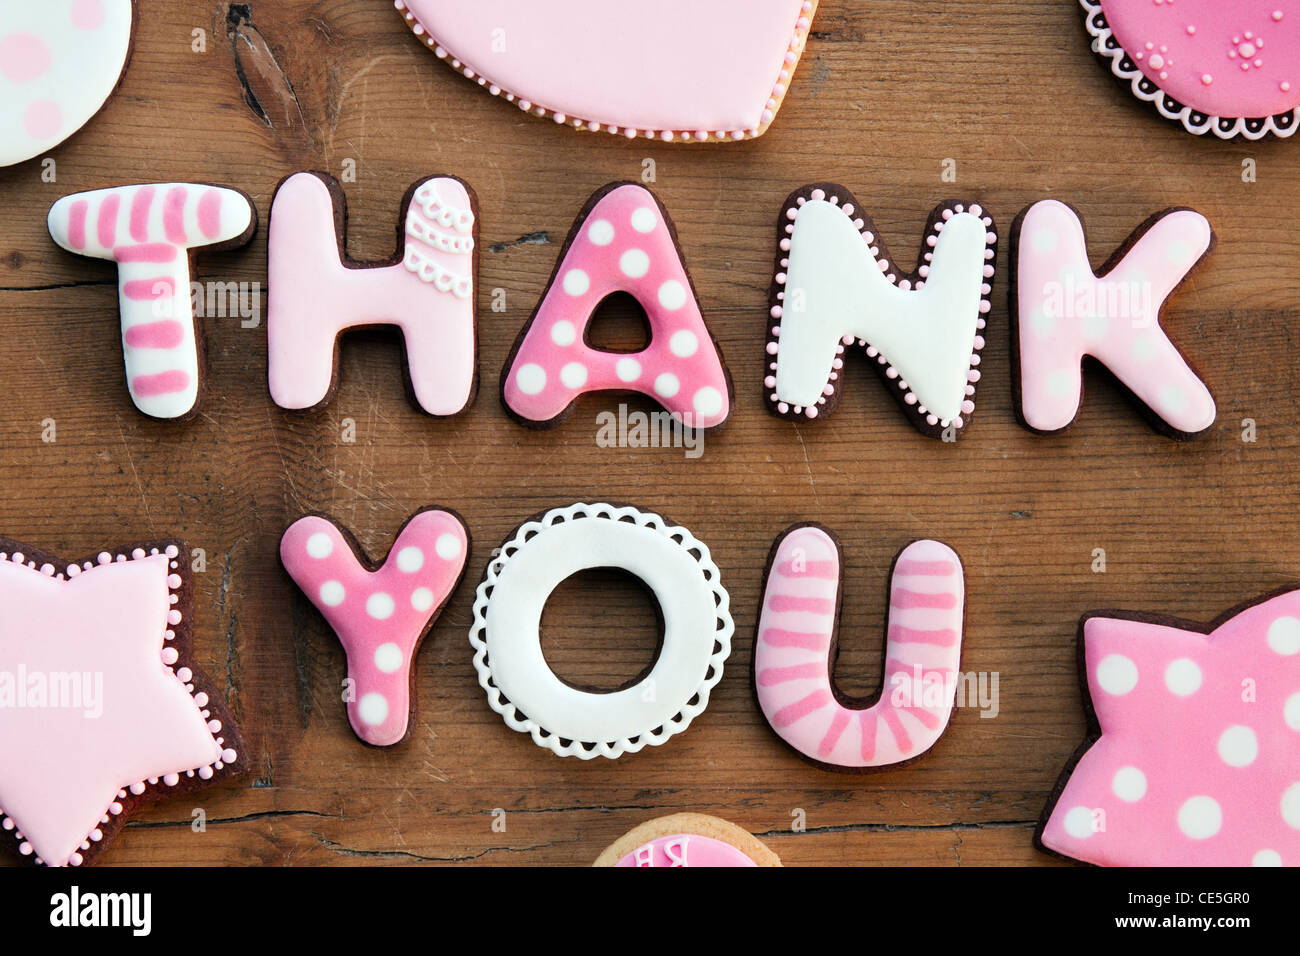 Thank you cookies - Stock Image